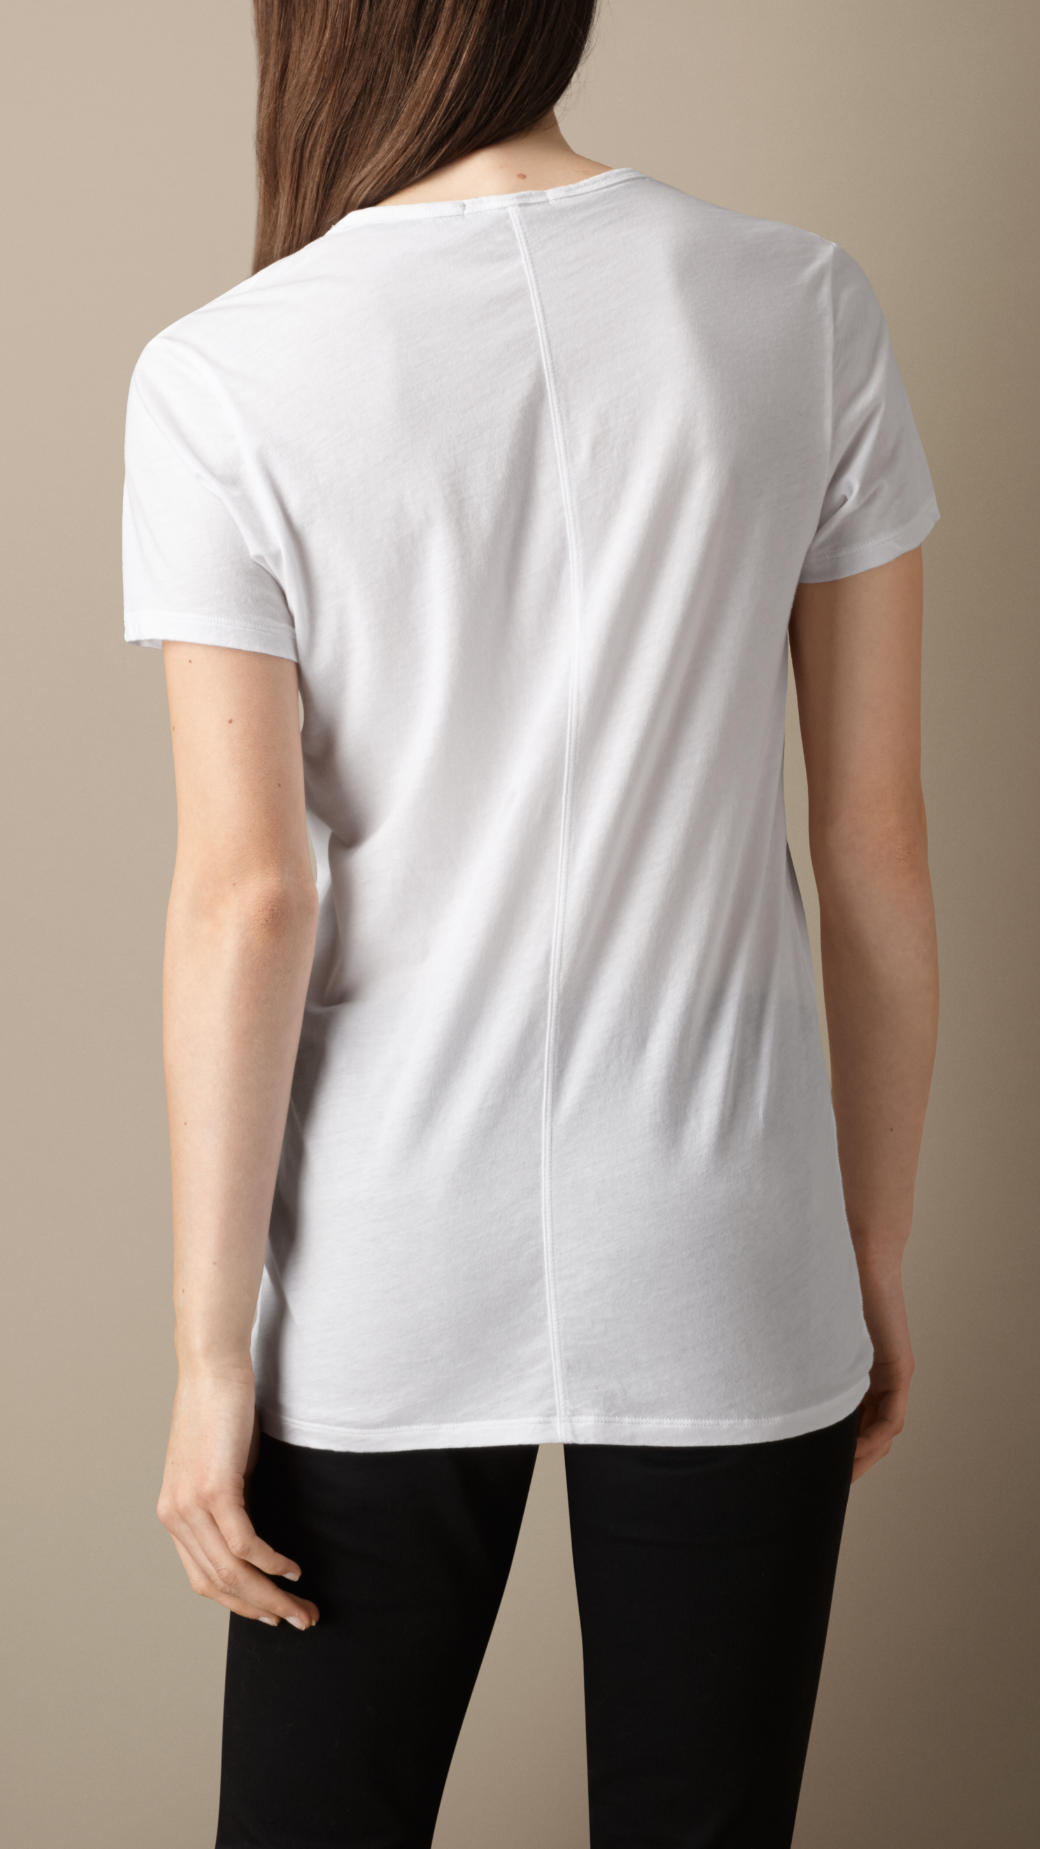 burberry v neck cotton jersey t shirt in white